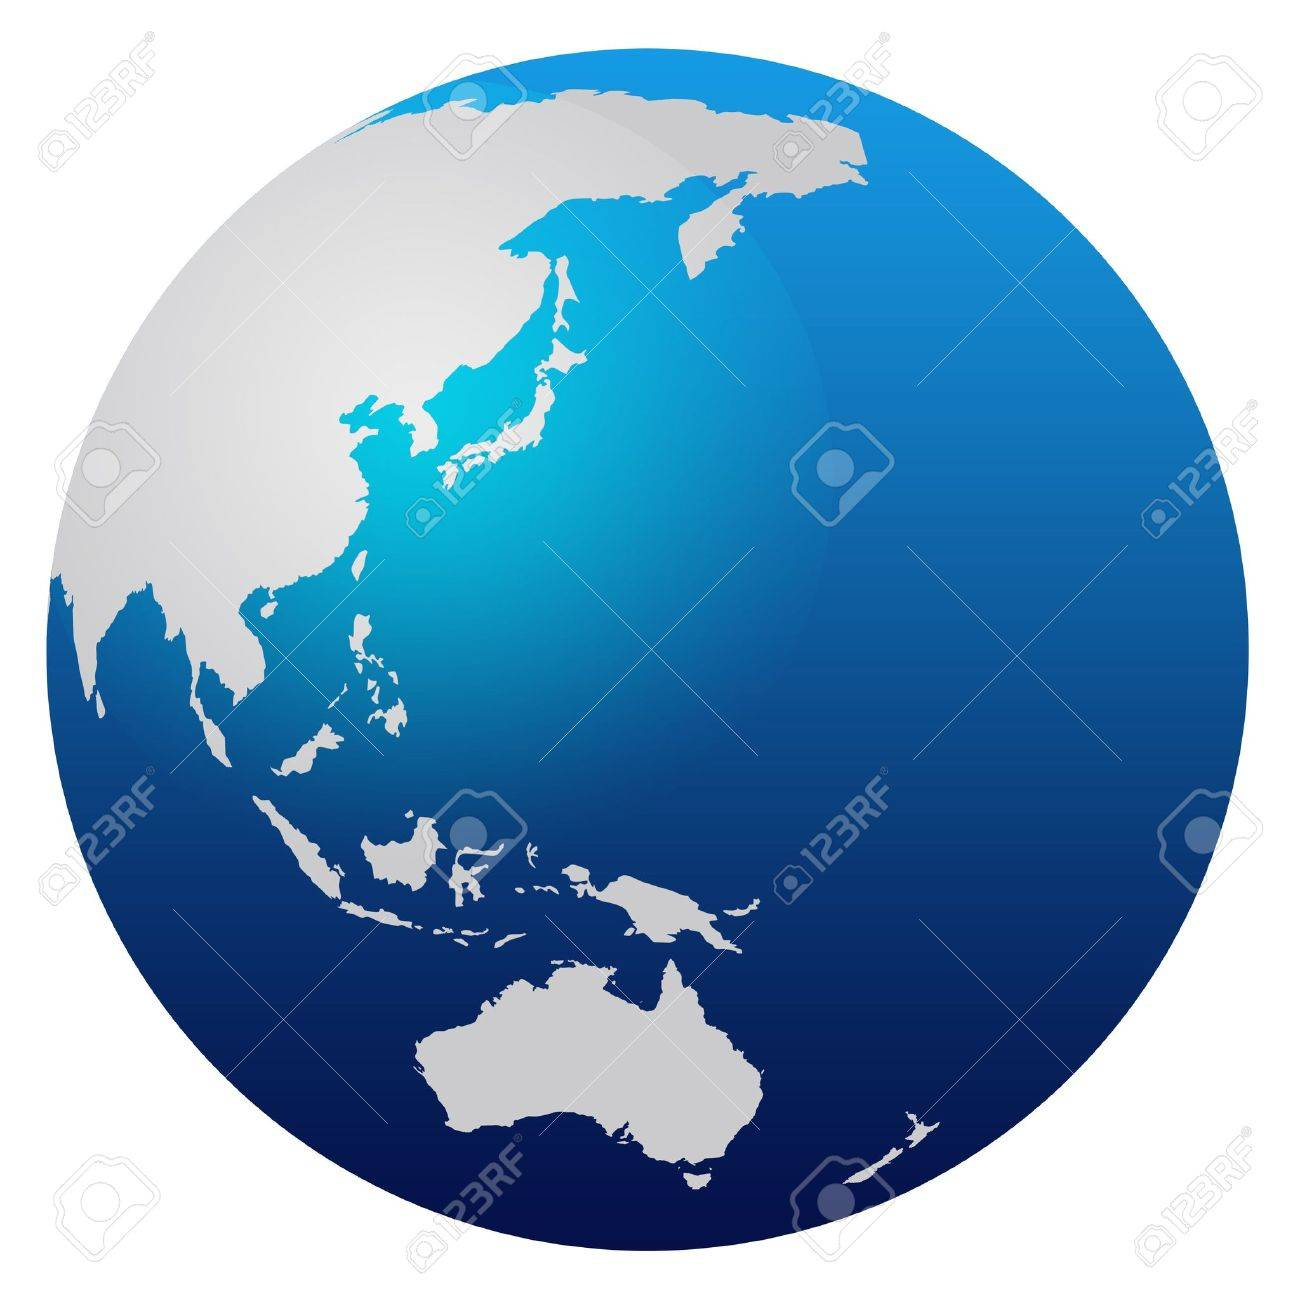 World Map Blue Globe Asia And Australia Stock Photo Picture And - Australia in world map